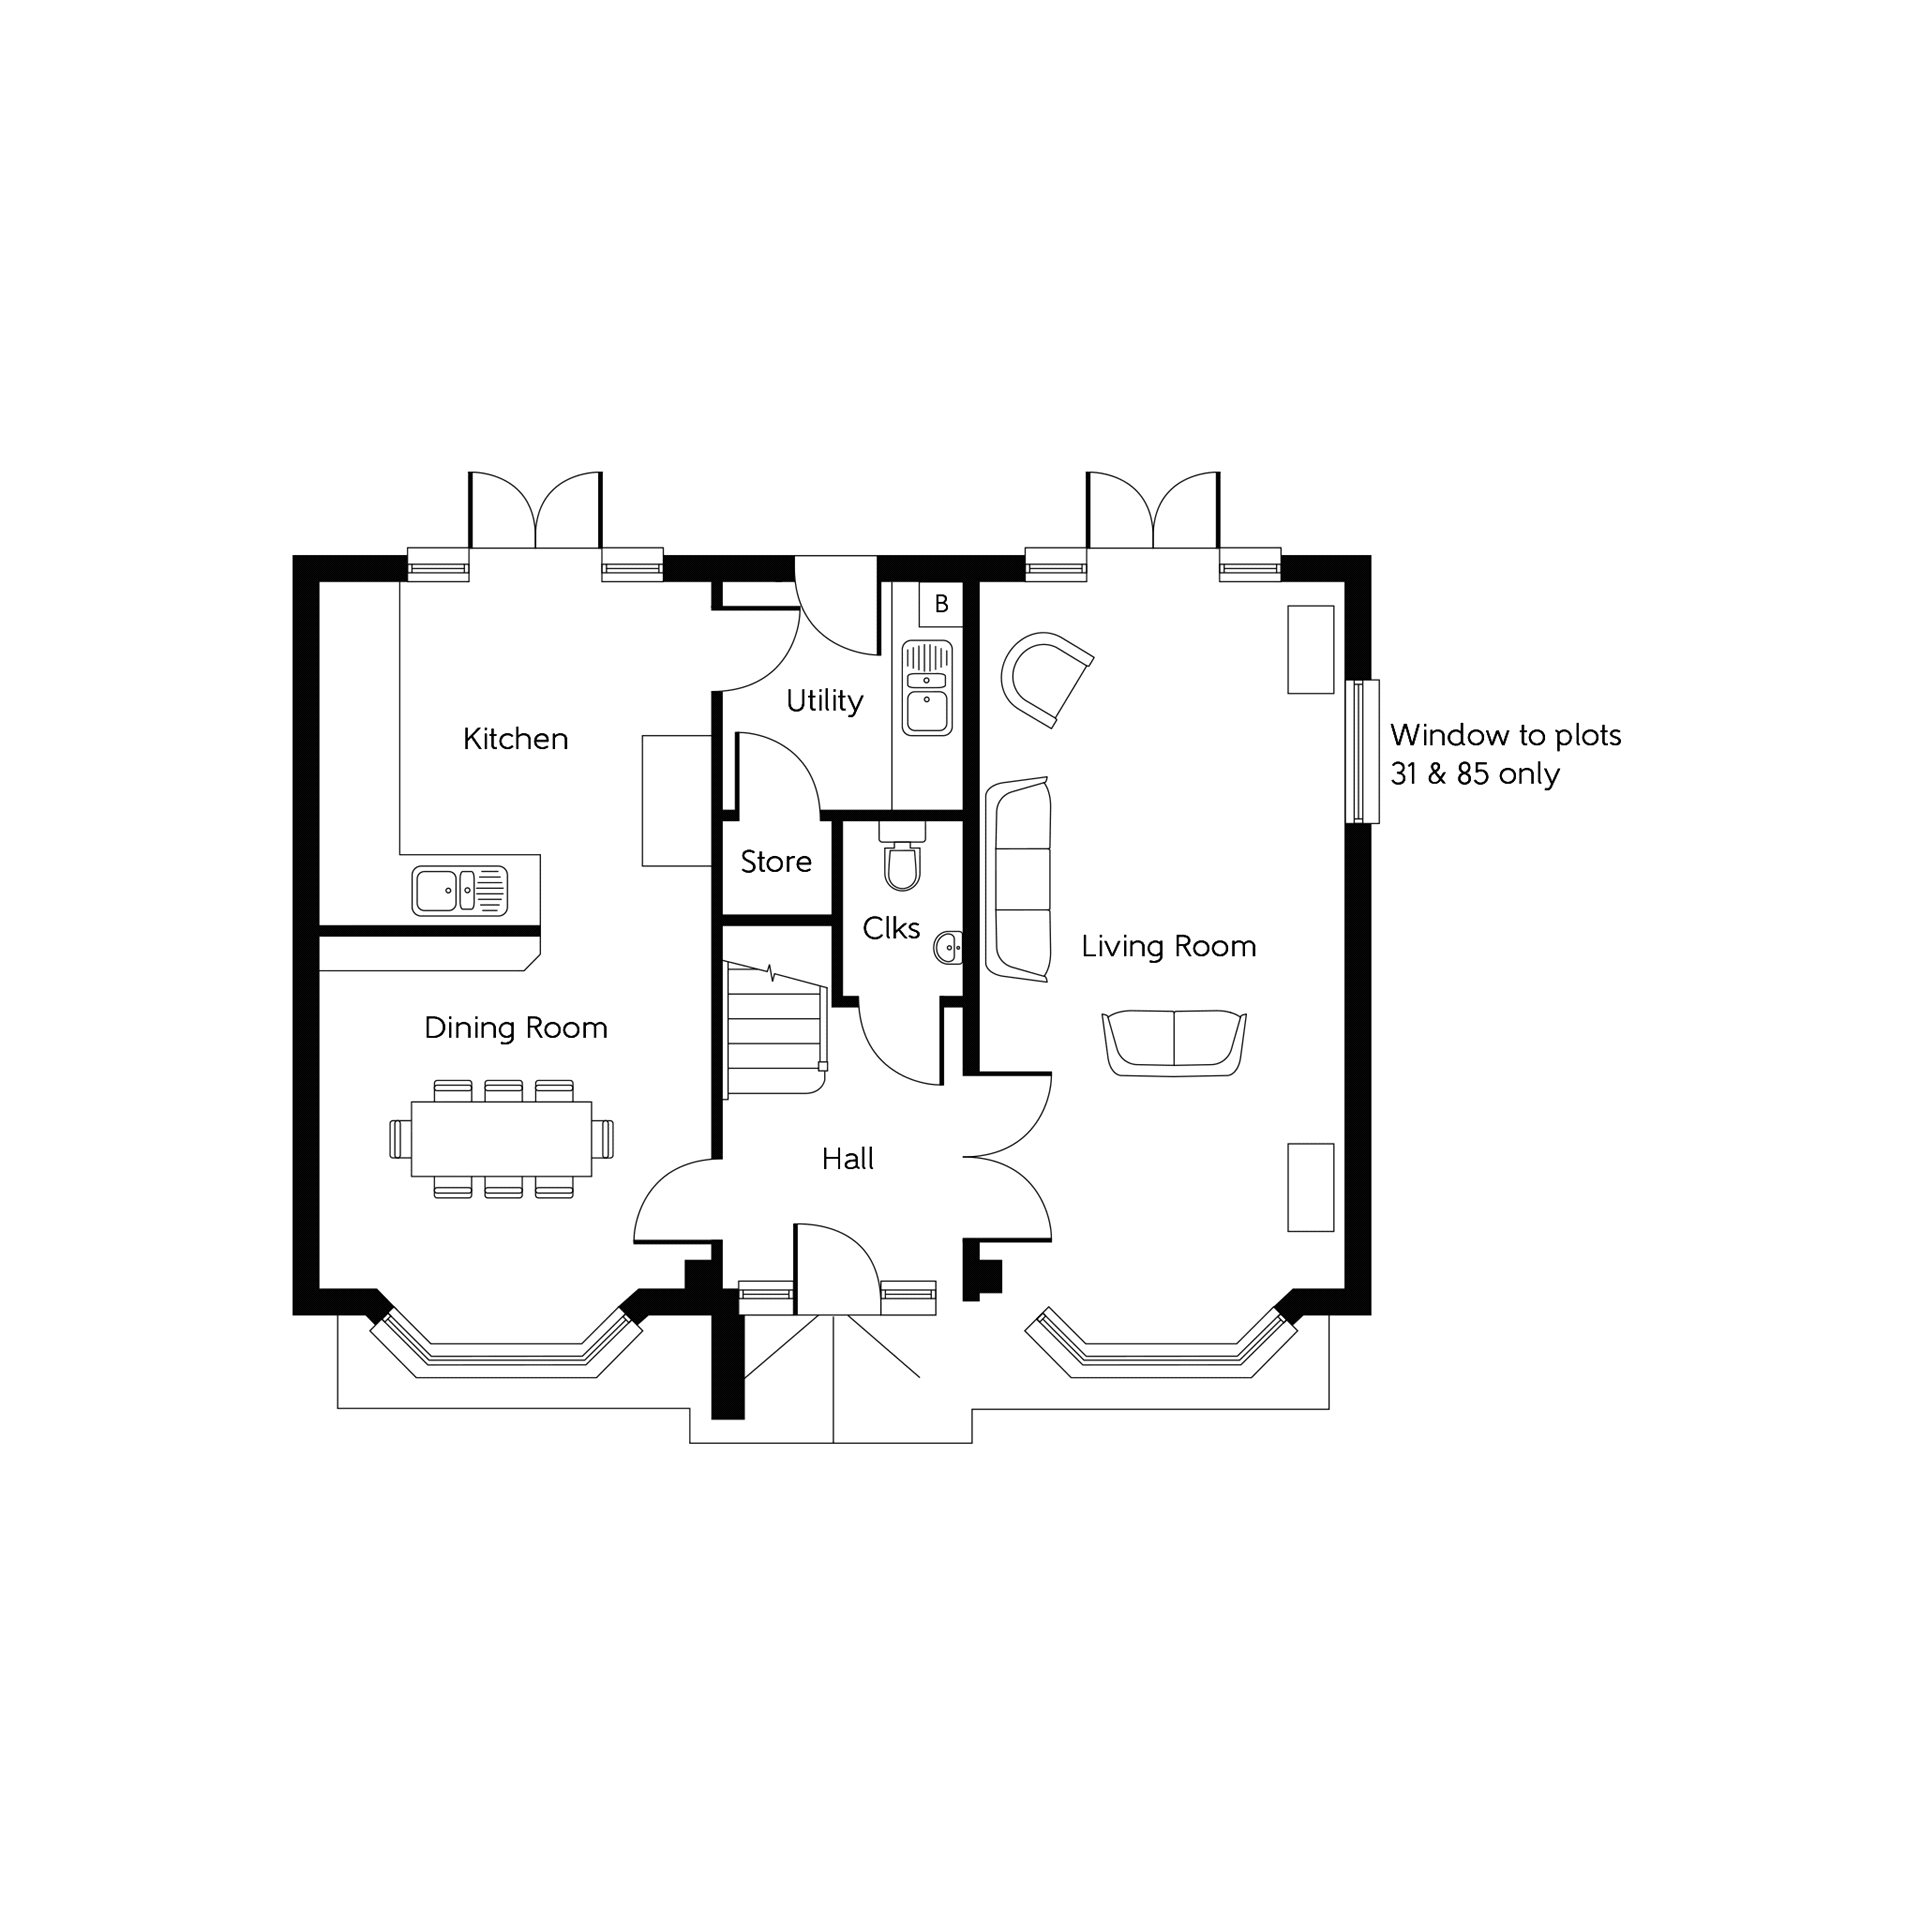 4 Bedrooms Detached house for sale in Langford Park, Beech Hill Road, Spencers Wood, Berkshire RG7